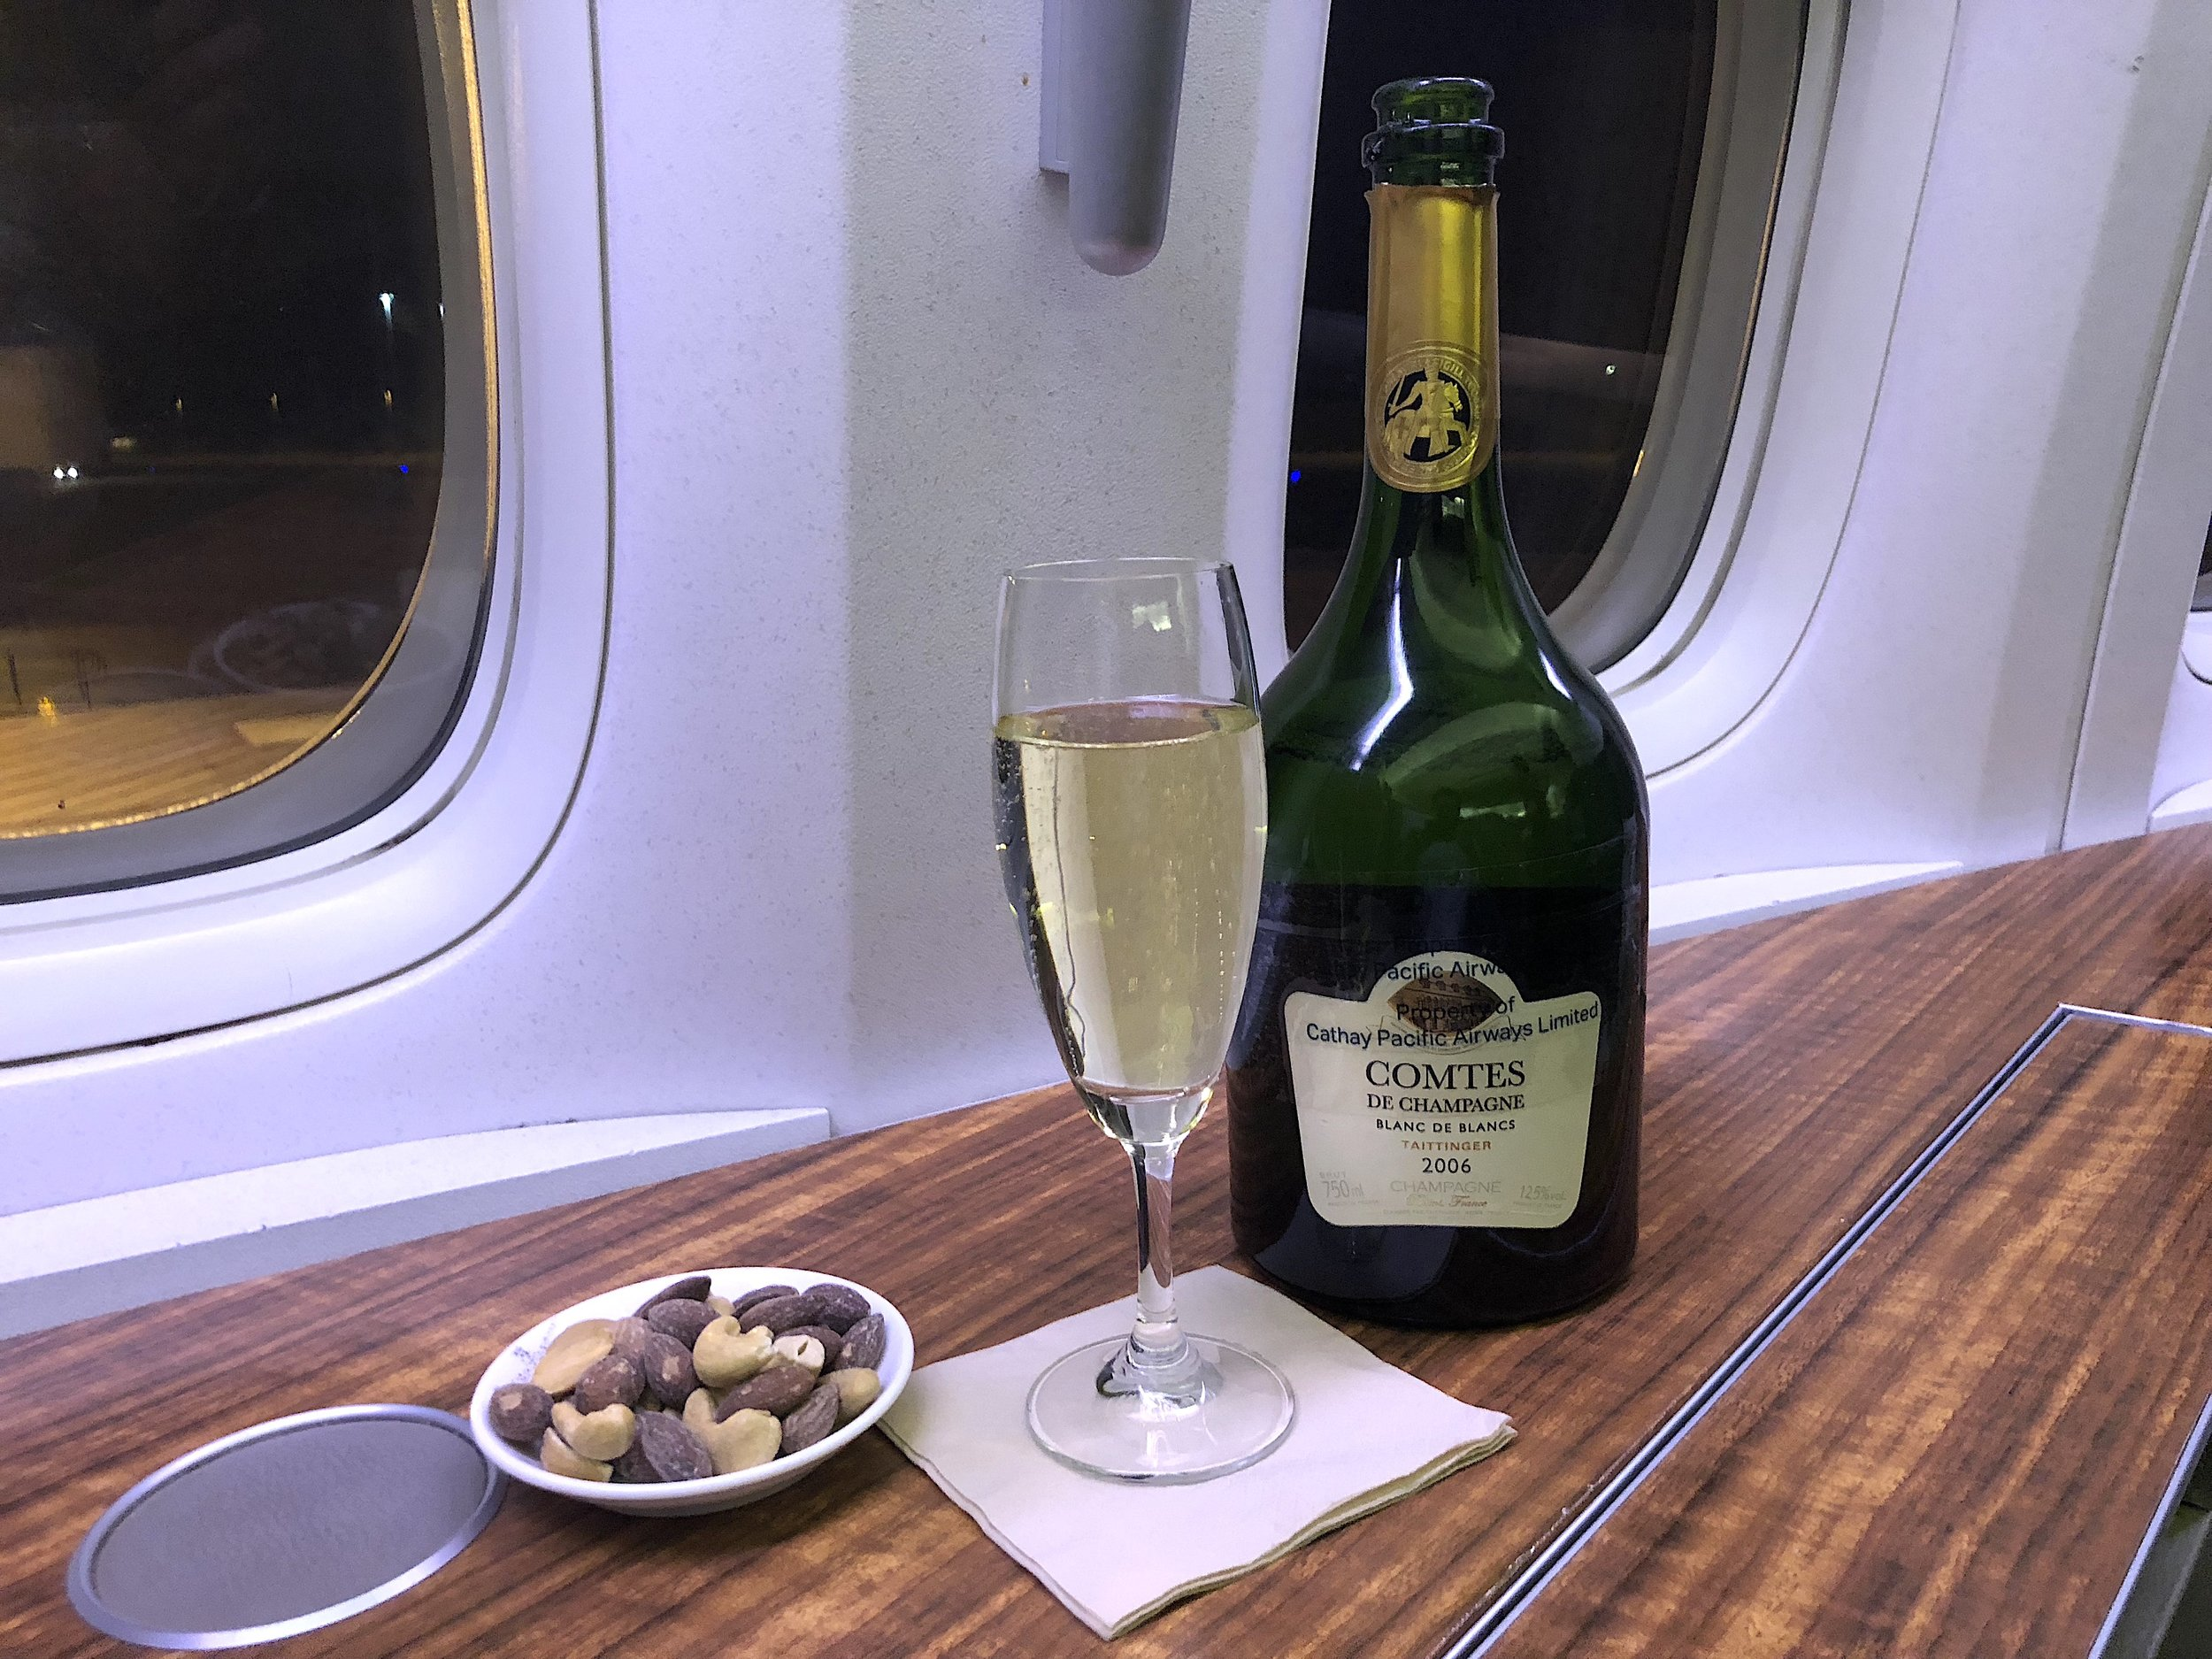 For the welcome drink- warm nuts and Comtes de Champagne